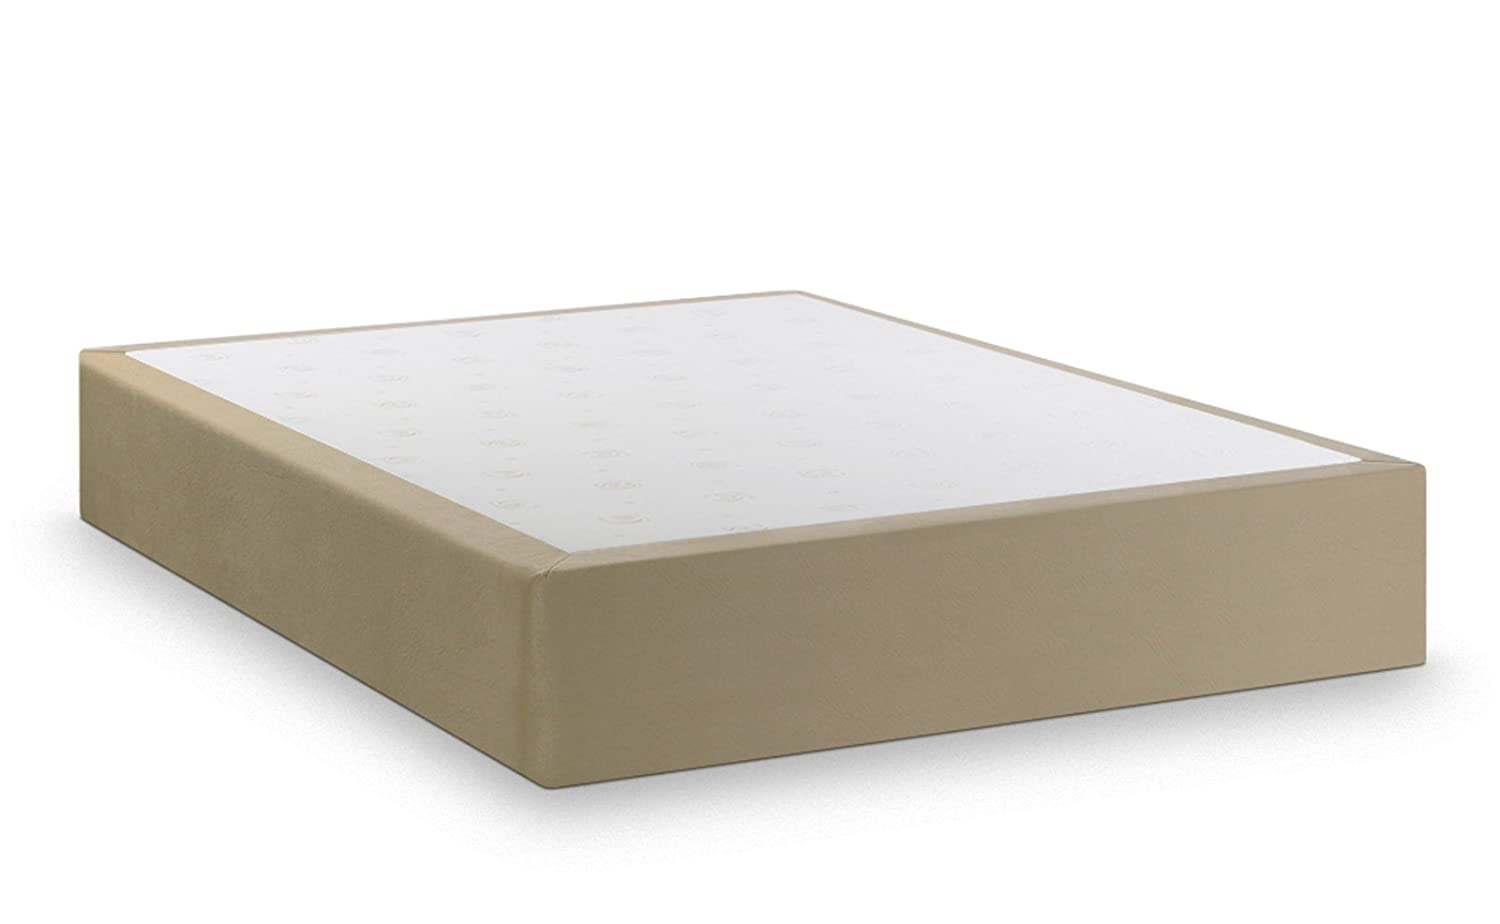 Best Mattress for Side Sleepers A Buyer's Guide